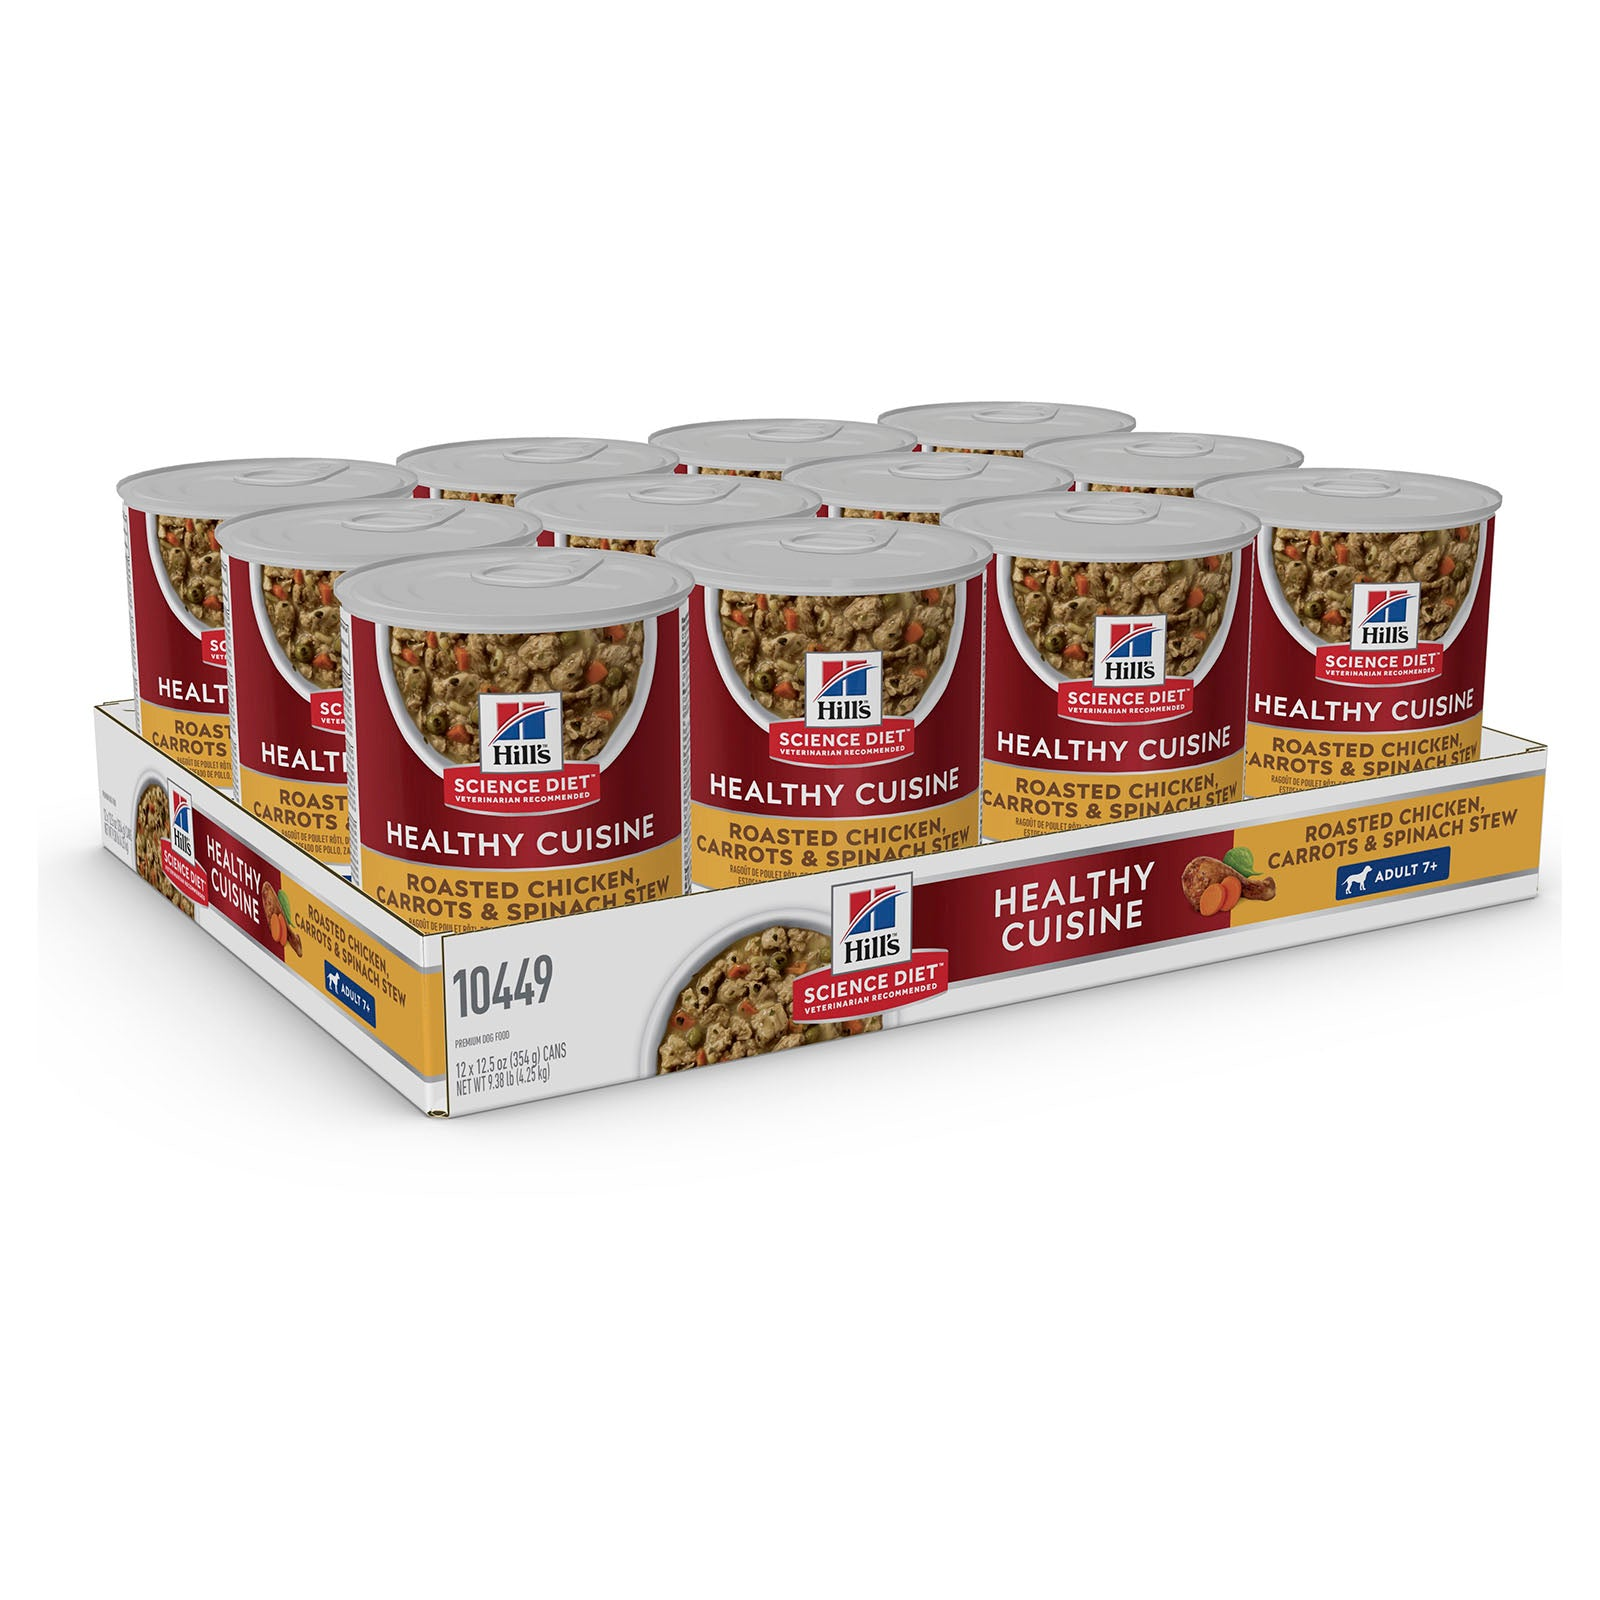 Hills Dog Food Can Adult 7+ Healthy Cuisine Roasted Chicken, Carrots & Spinach Stew